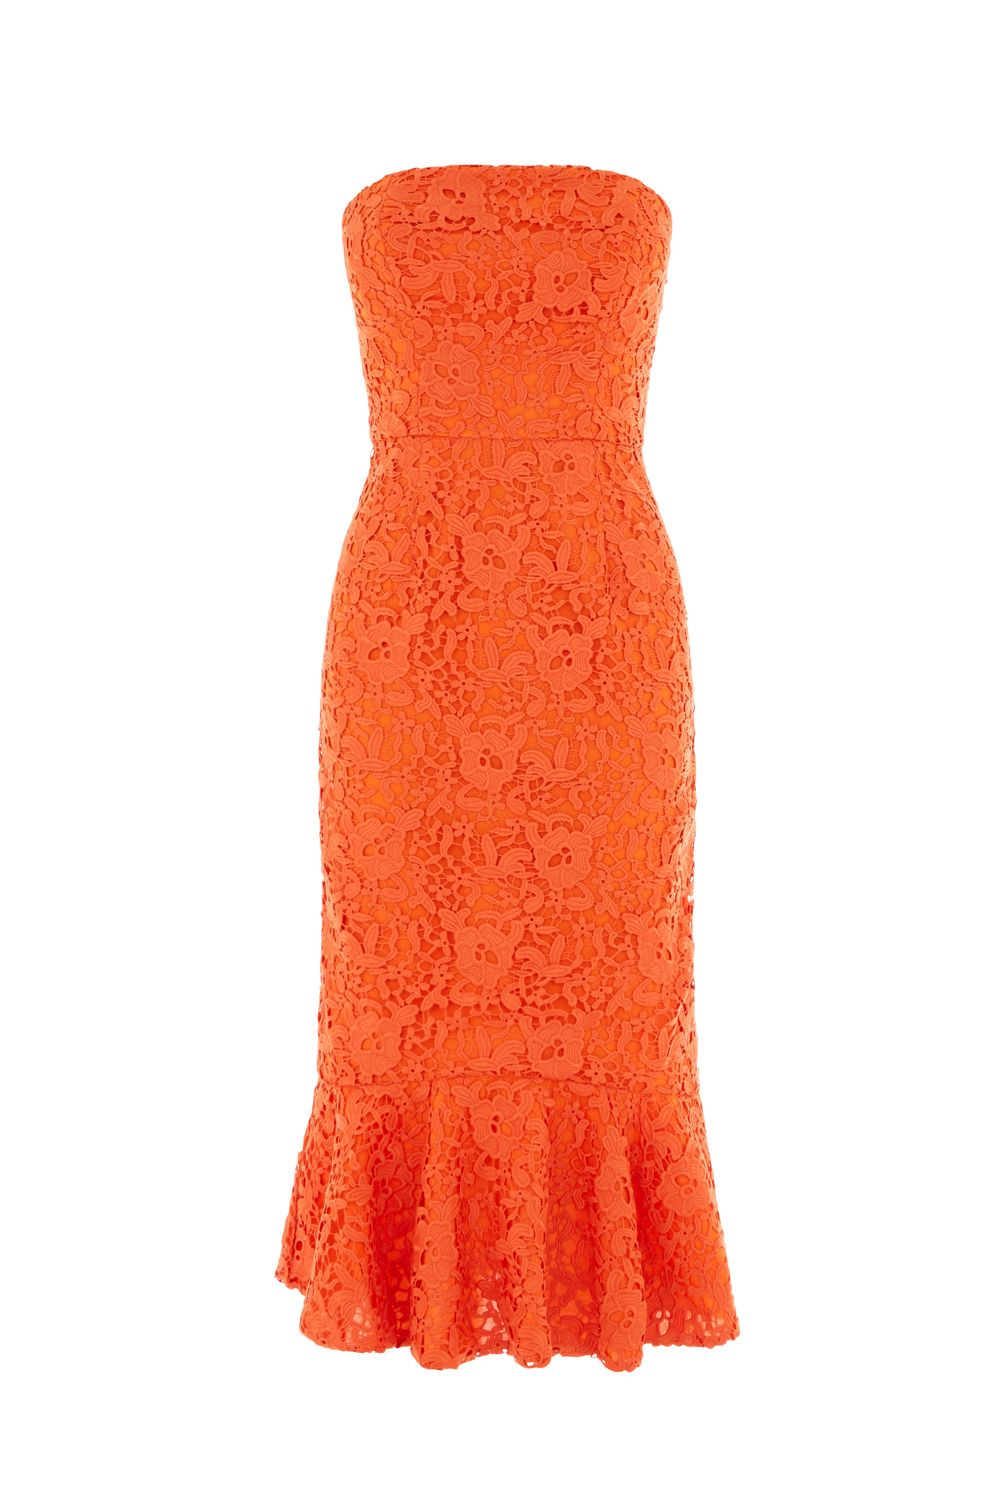 Warehouse Strapless Premium Lace Dress, Orange